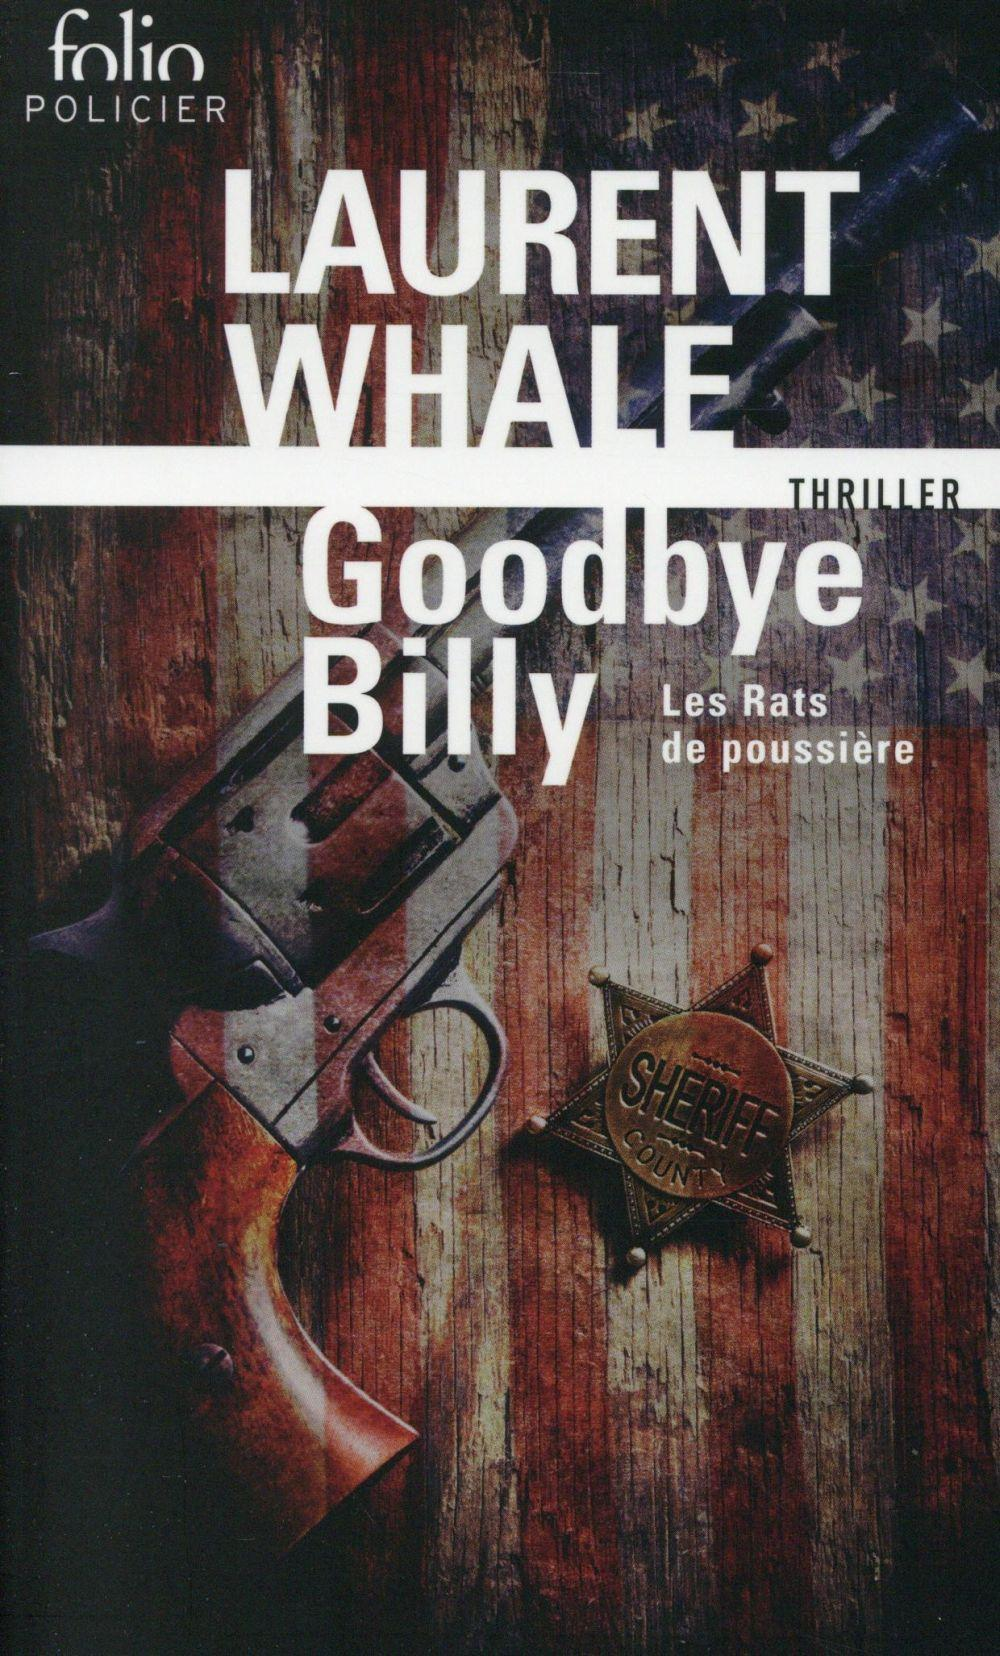 Les rats de poussière t.1 ; goodbye Billy  - Laurent Whale